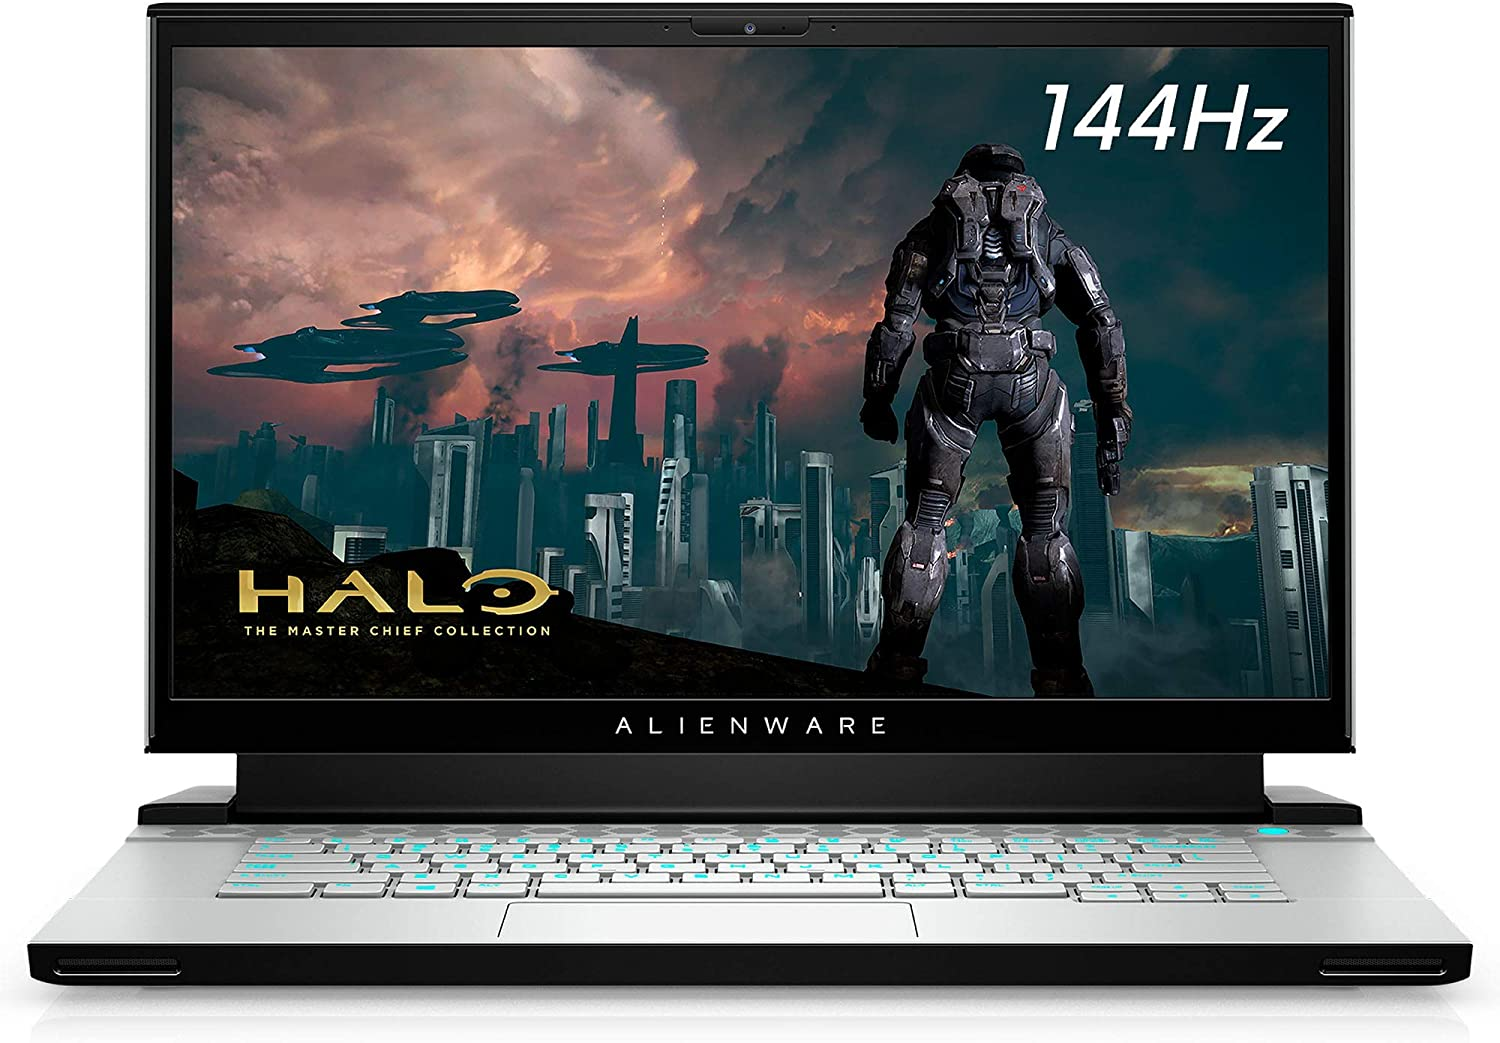 New Alienware m15 R3